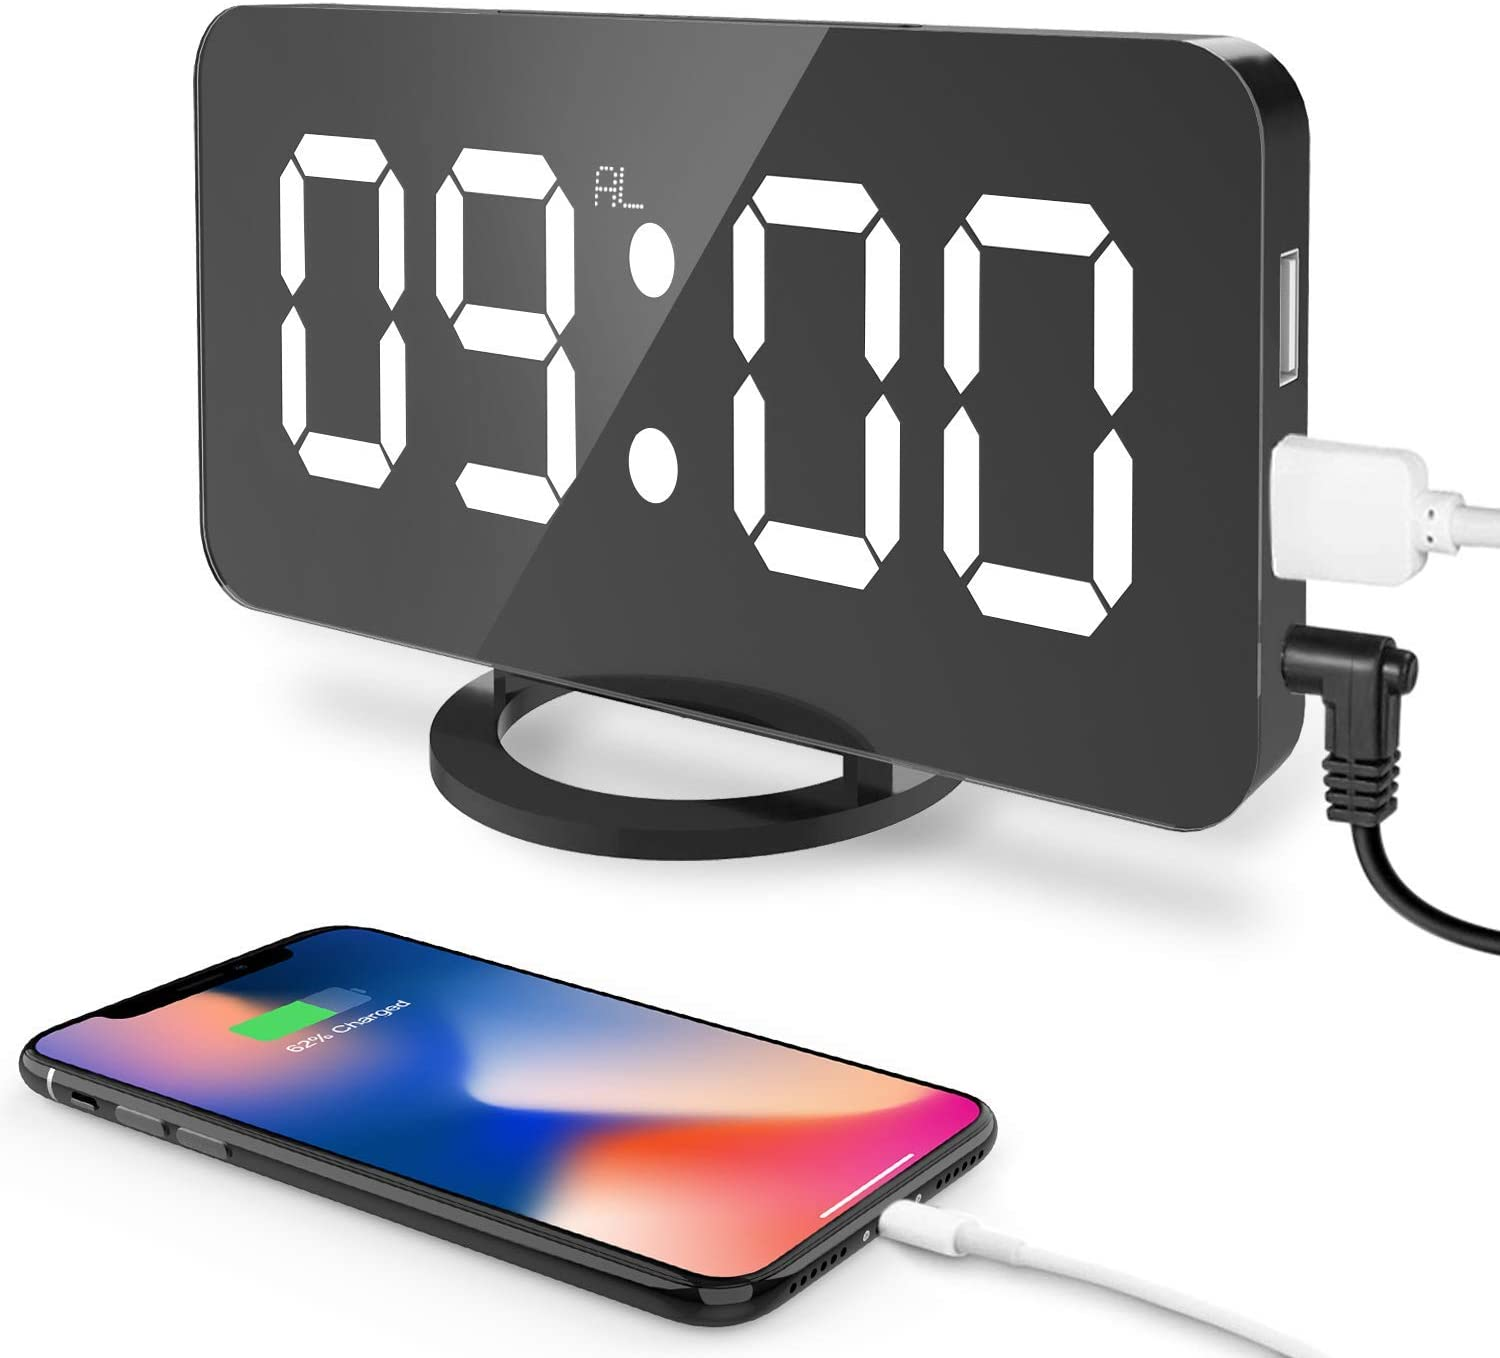 "Digital Alarm Clock, Large 6.5"" LED Easy-Read Night Light Dimmer Display Clock with Dual USB Charger Port, Snooze Function Adjustable Brightness for Bedroom Living Room Decor"